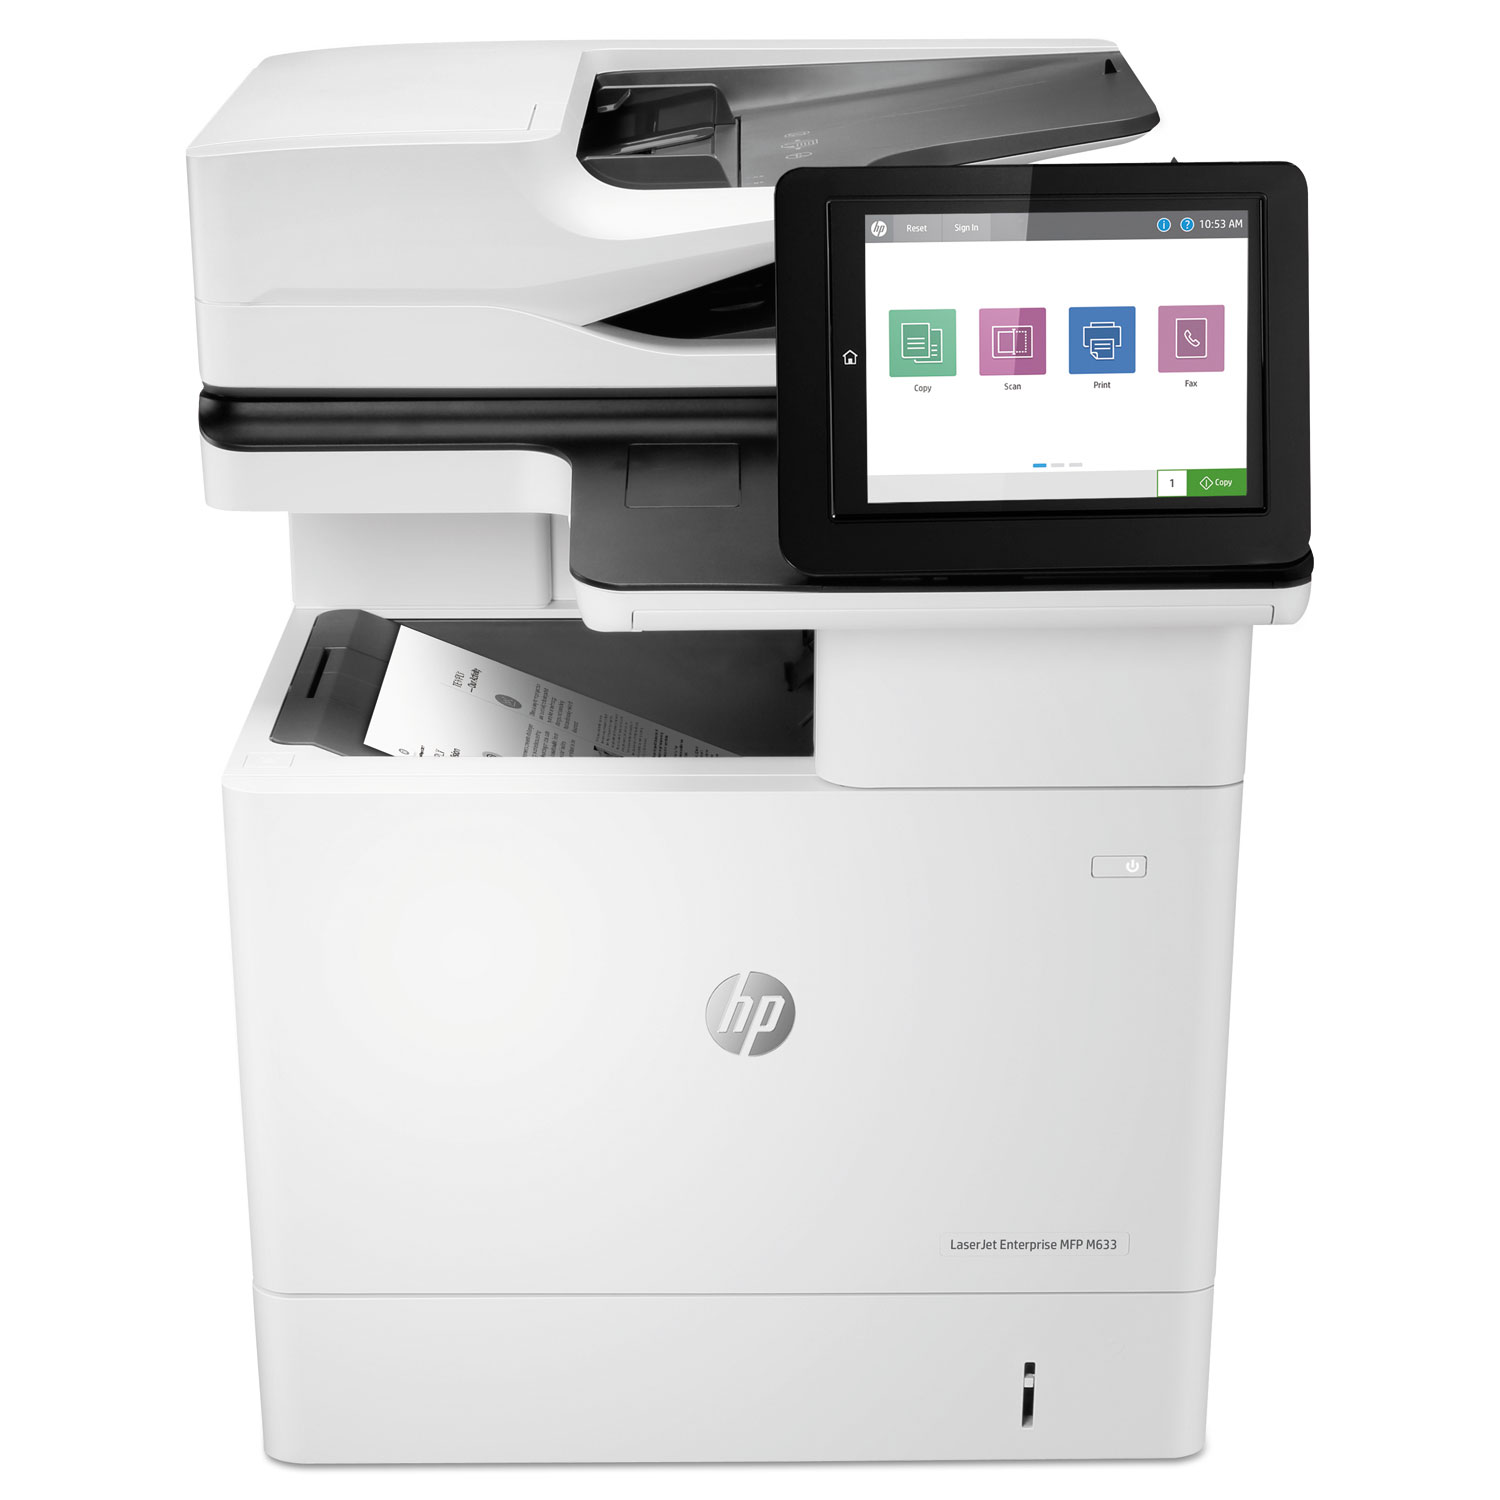 LaserJet Enterprise MFP M633fh, Copy/Fax/Print/Scan